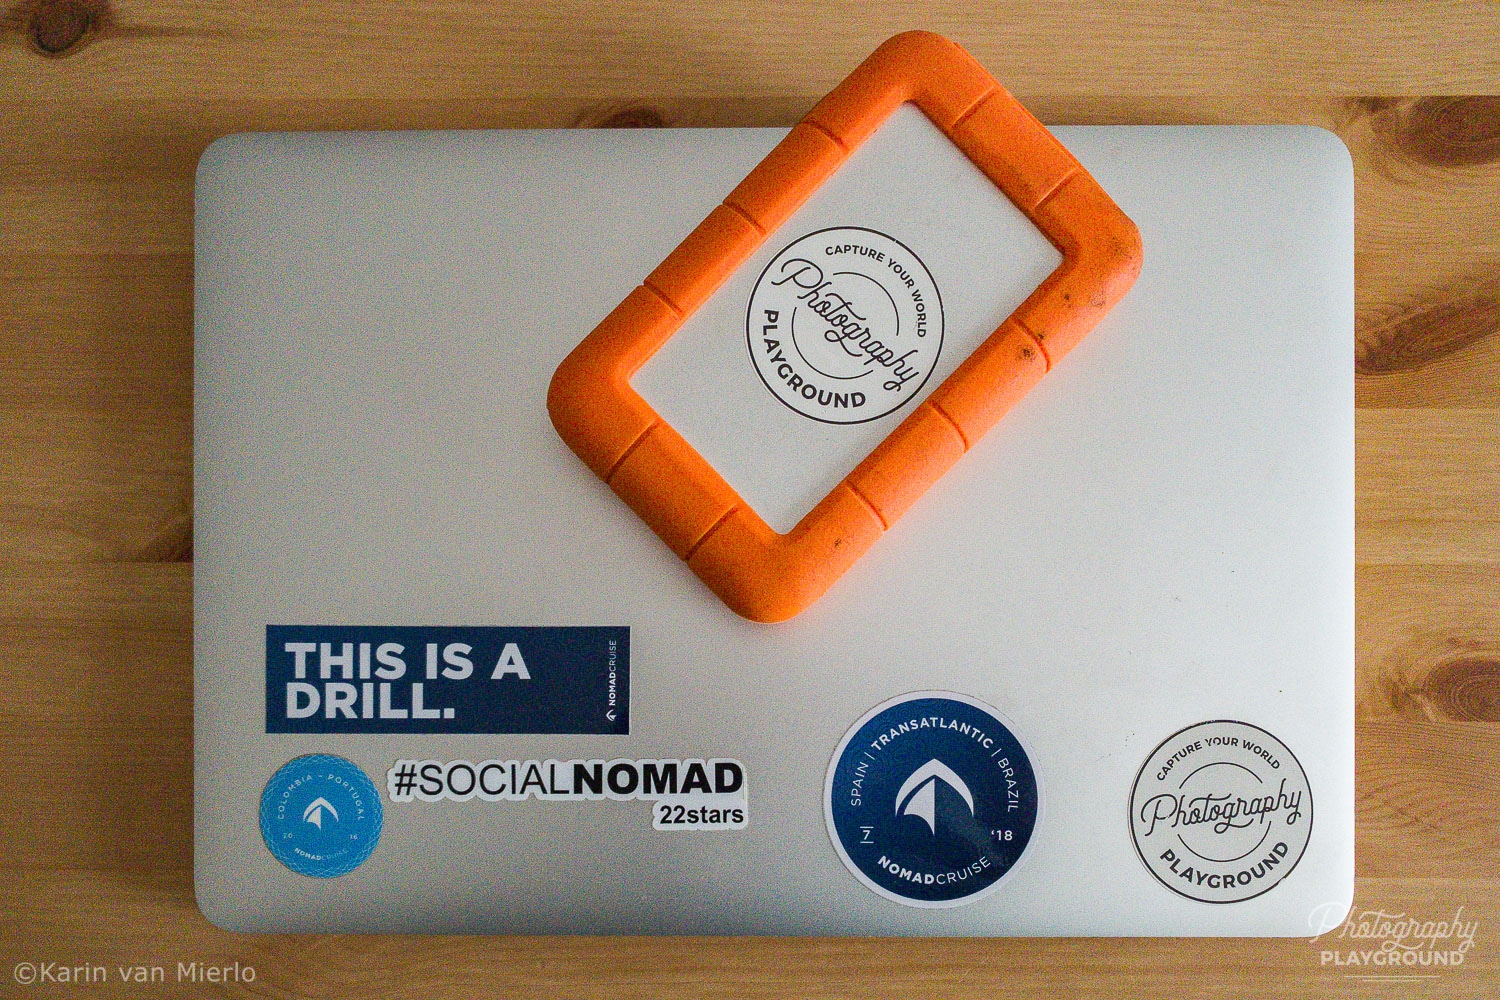 travel photography safety tips, portable photo storage, photo storage device, photo backup device | Photo: Macbook and LaCie Rugged External Storage Unit © Karin van Mierlo, Photography Playground